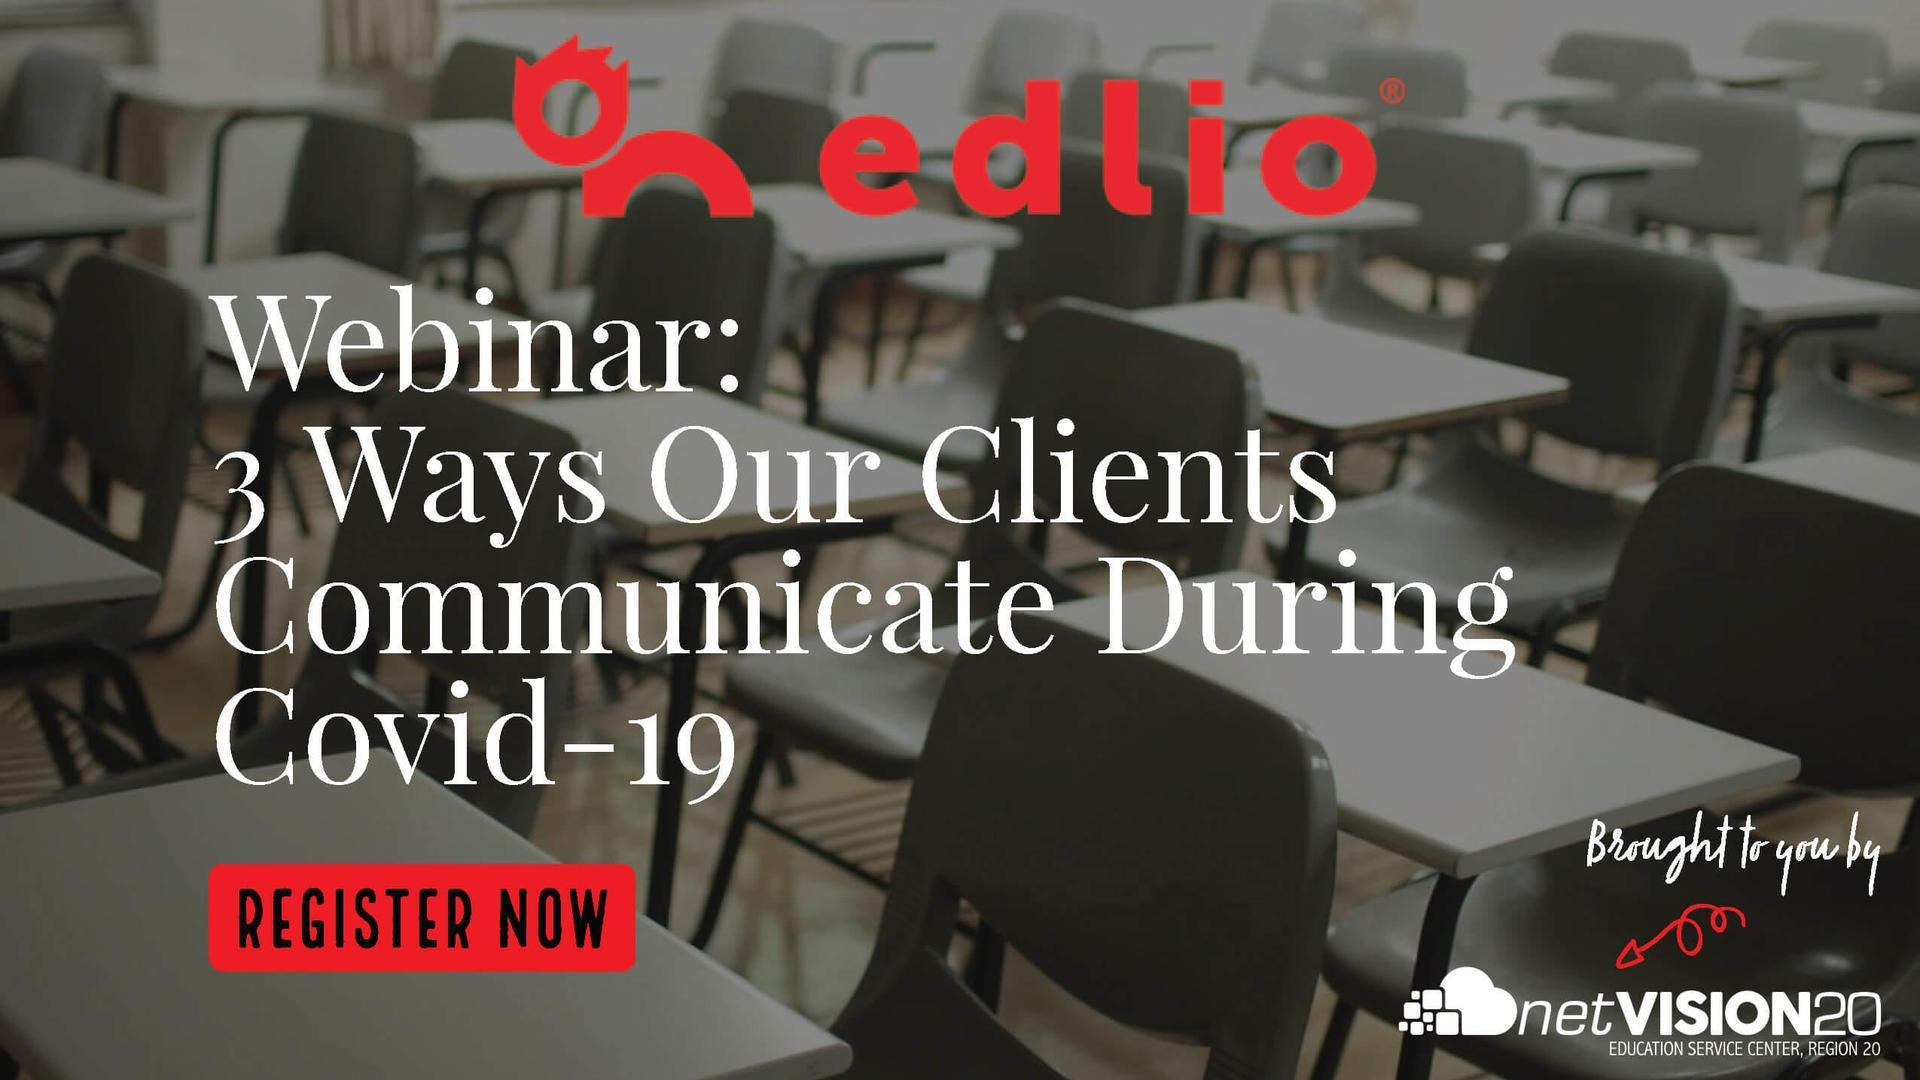 Edlio Webinar: 3 Ways Our Clients Communicate During Covid-19. Register Now!